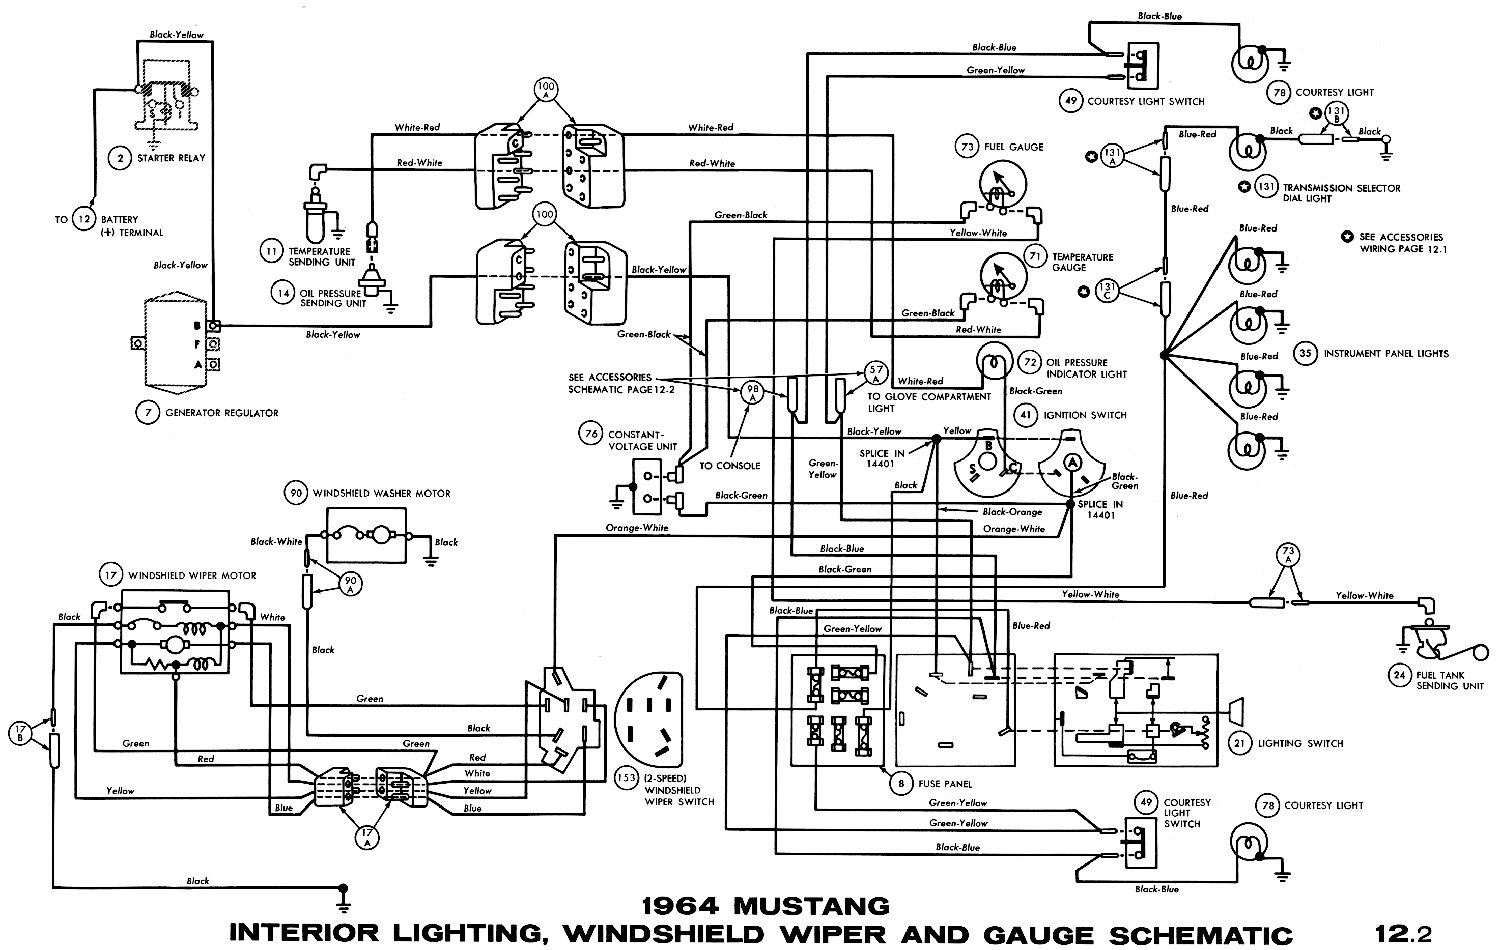 2006 mustang radio wiring harness diagram